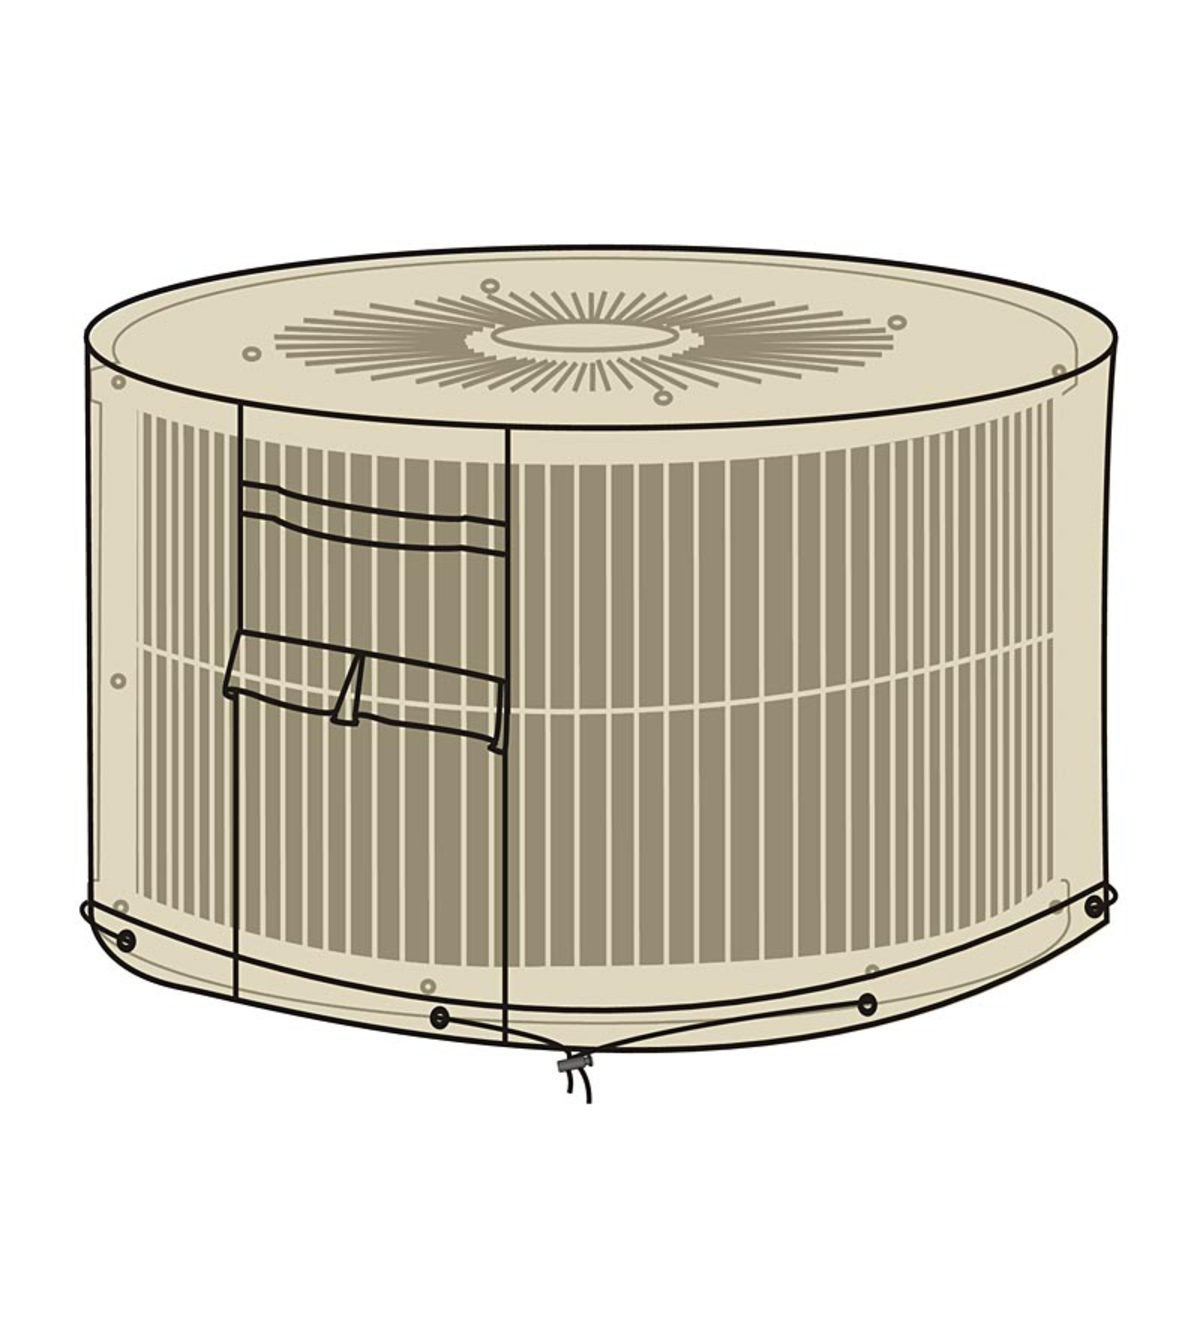 Deluxe Round AC Unit Cover